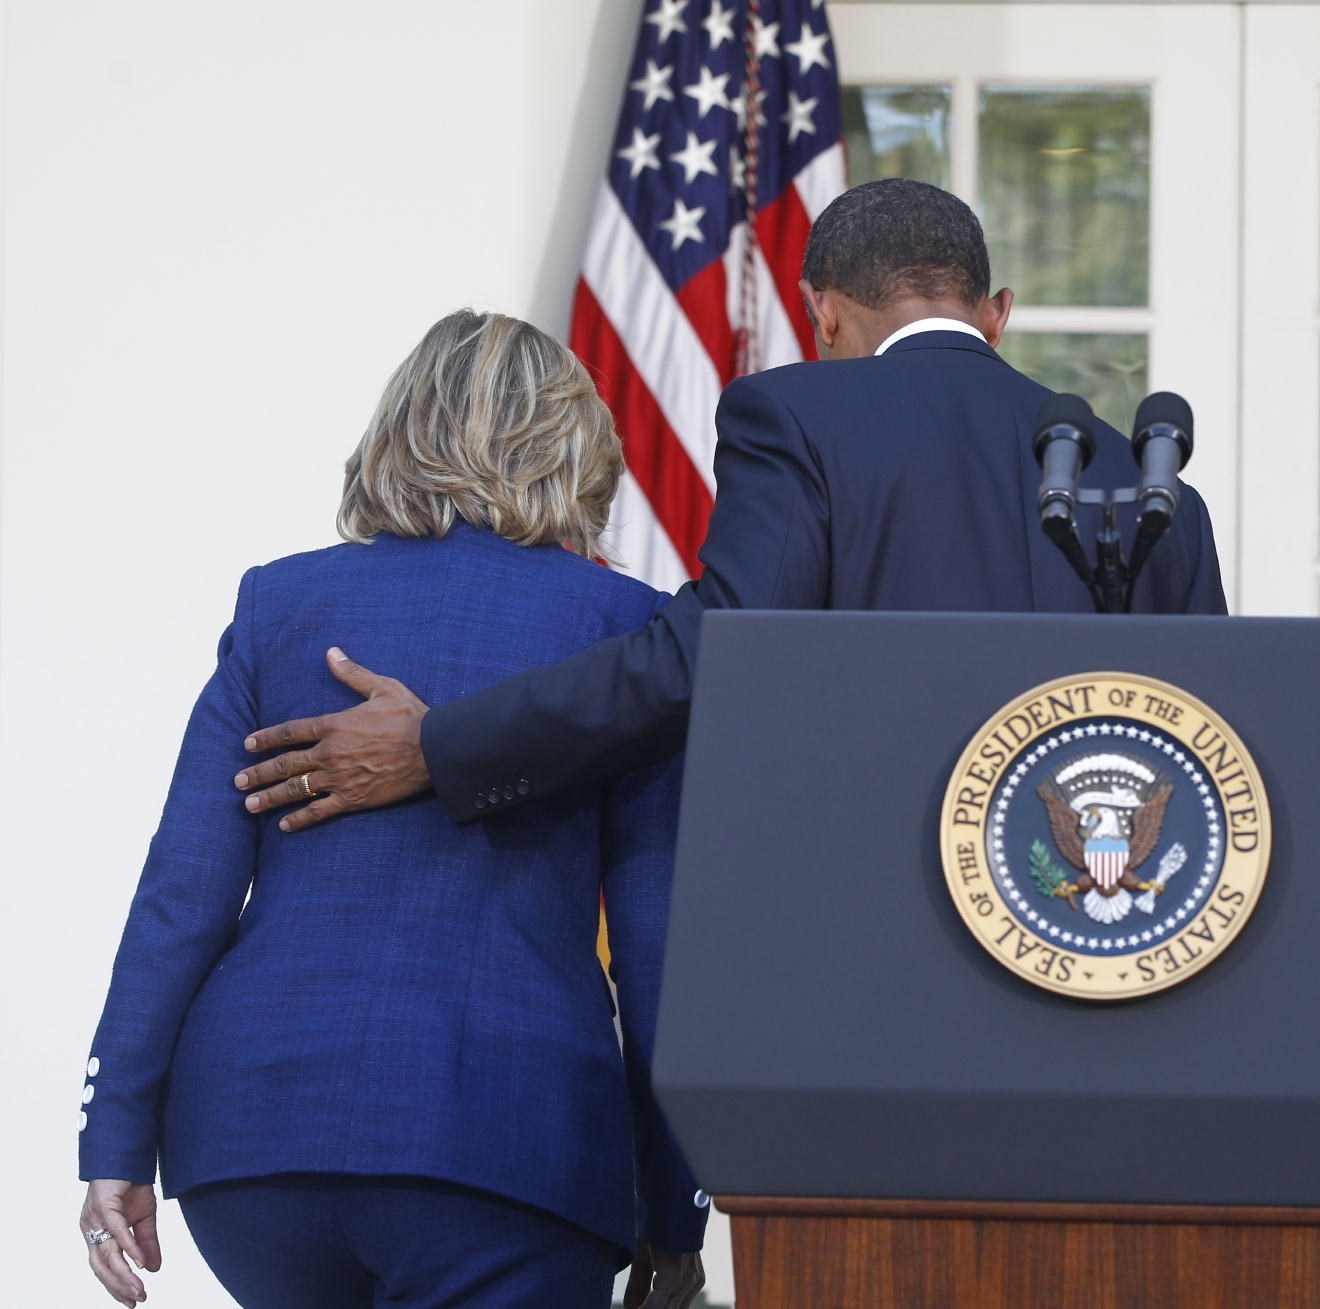 In this photo taken Sept. 1, 2010, President Barack Obama walks with then-Secretary of State Hillary Rodham Clinton after he made a statement in the Rose Garden of the White House in Washington. (AP Photo/Charles Dharapak)